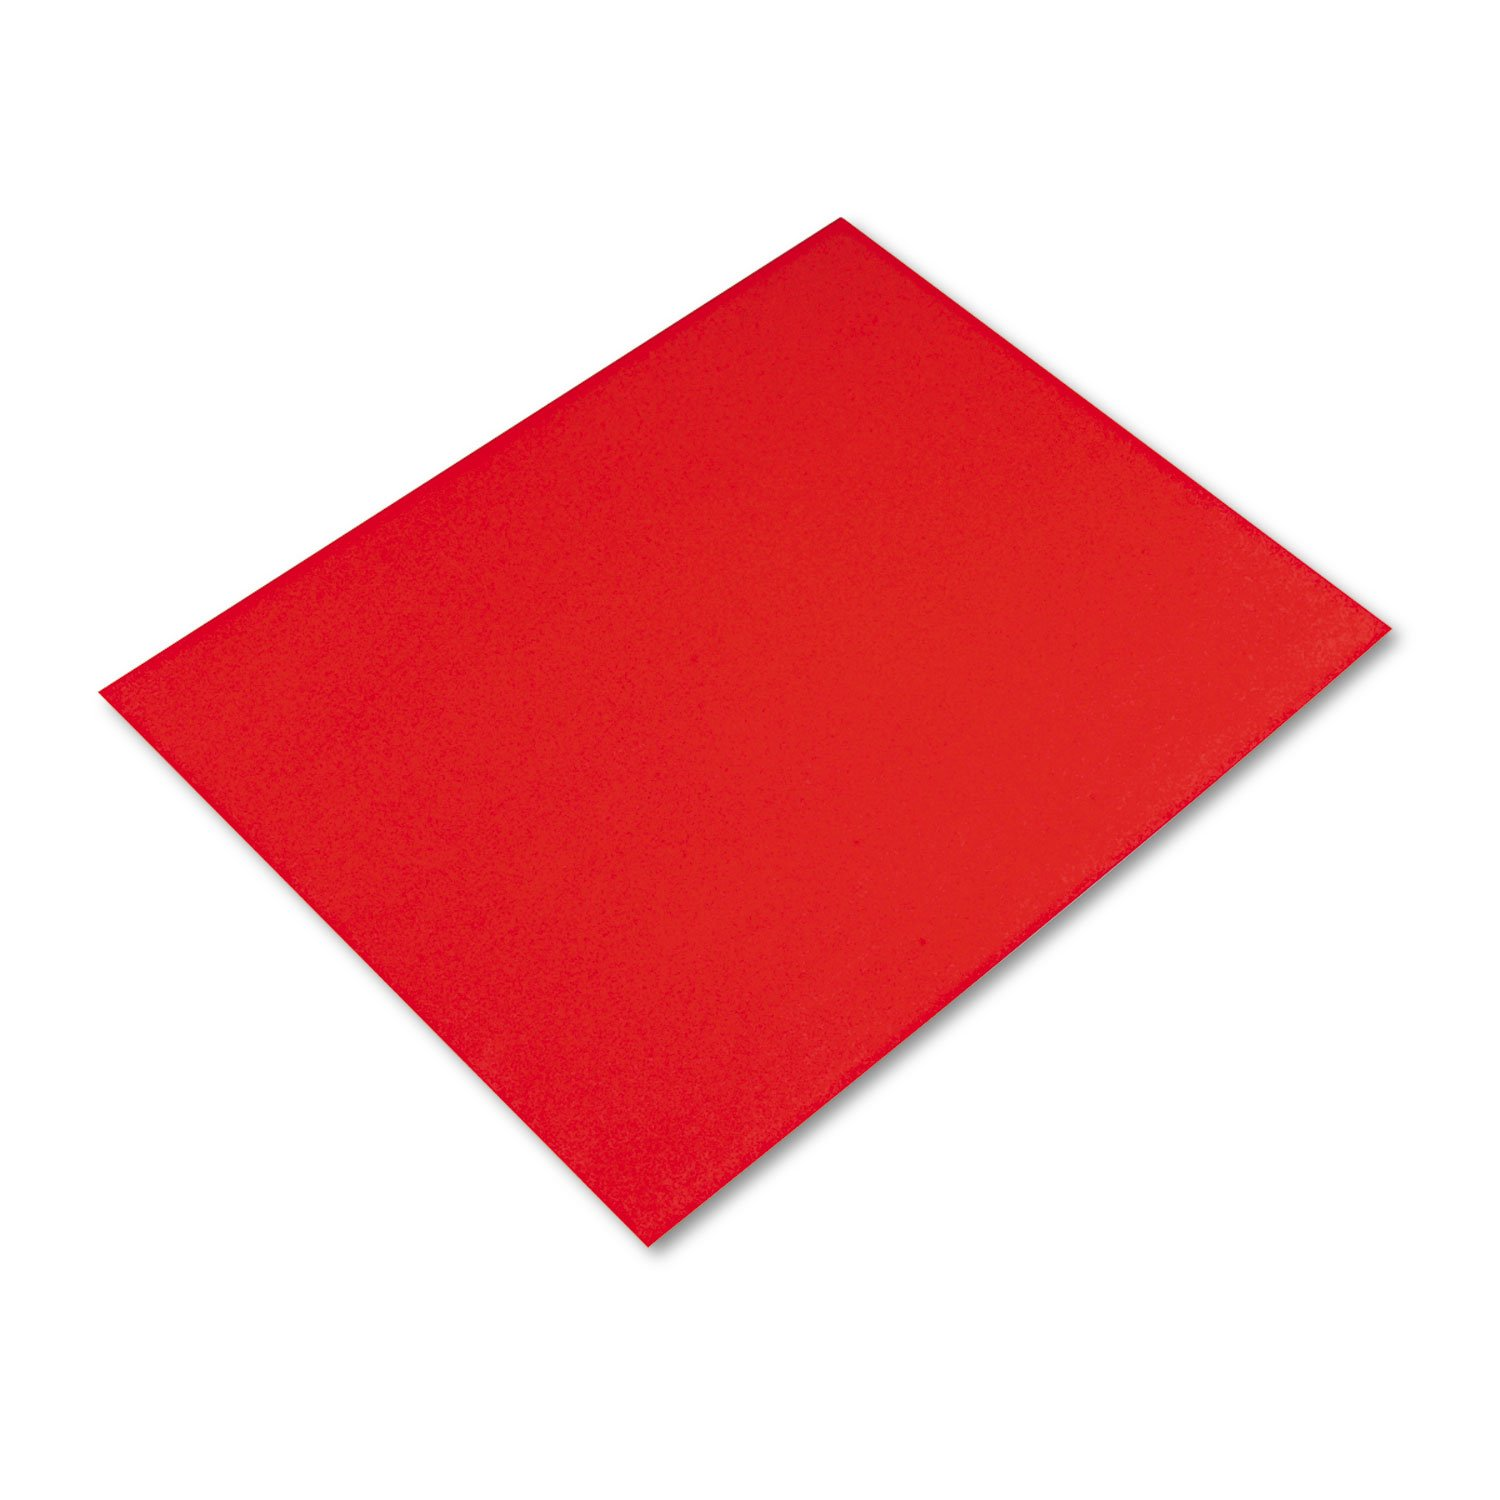 Pacon PAC54751 4-Ply Railroad Board, Red, 22'' x 28'', 25 Sheets